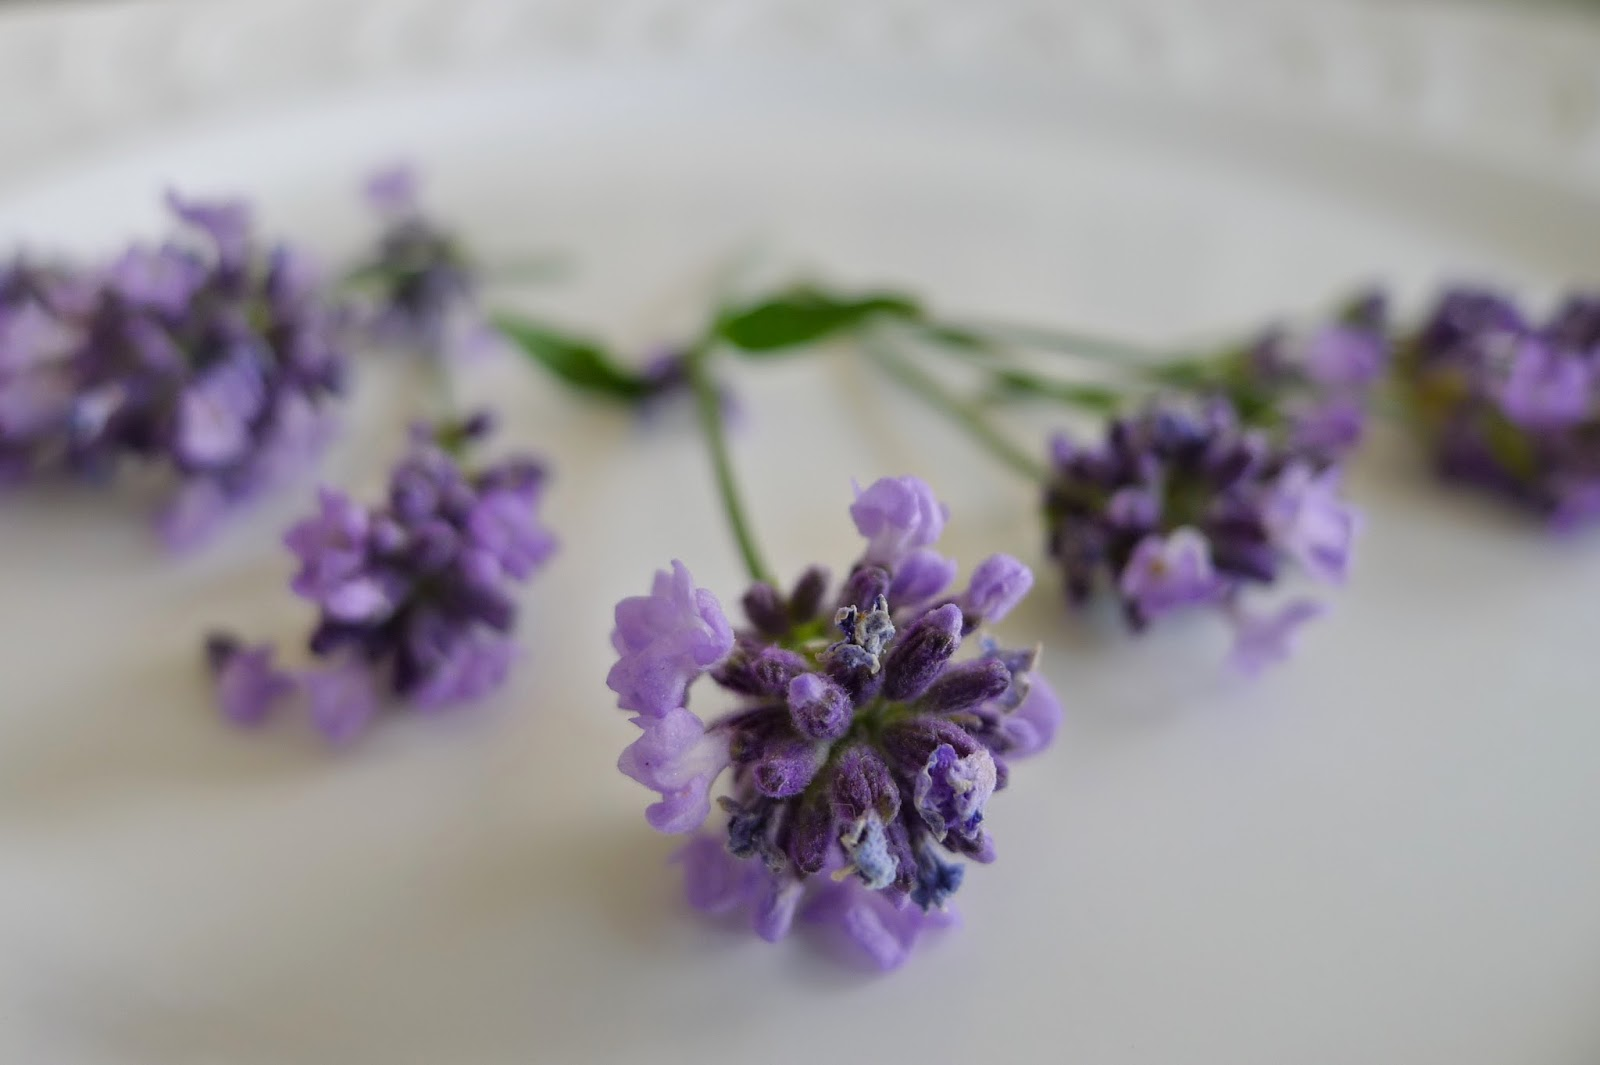 Lady lavender, edible flowers